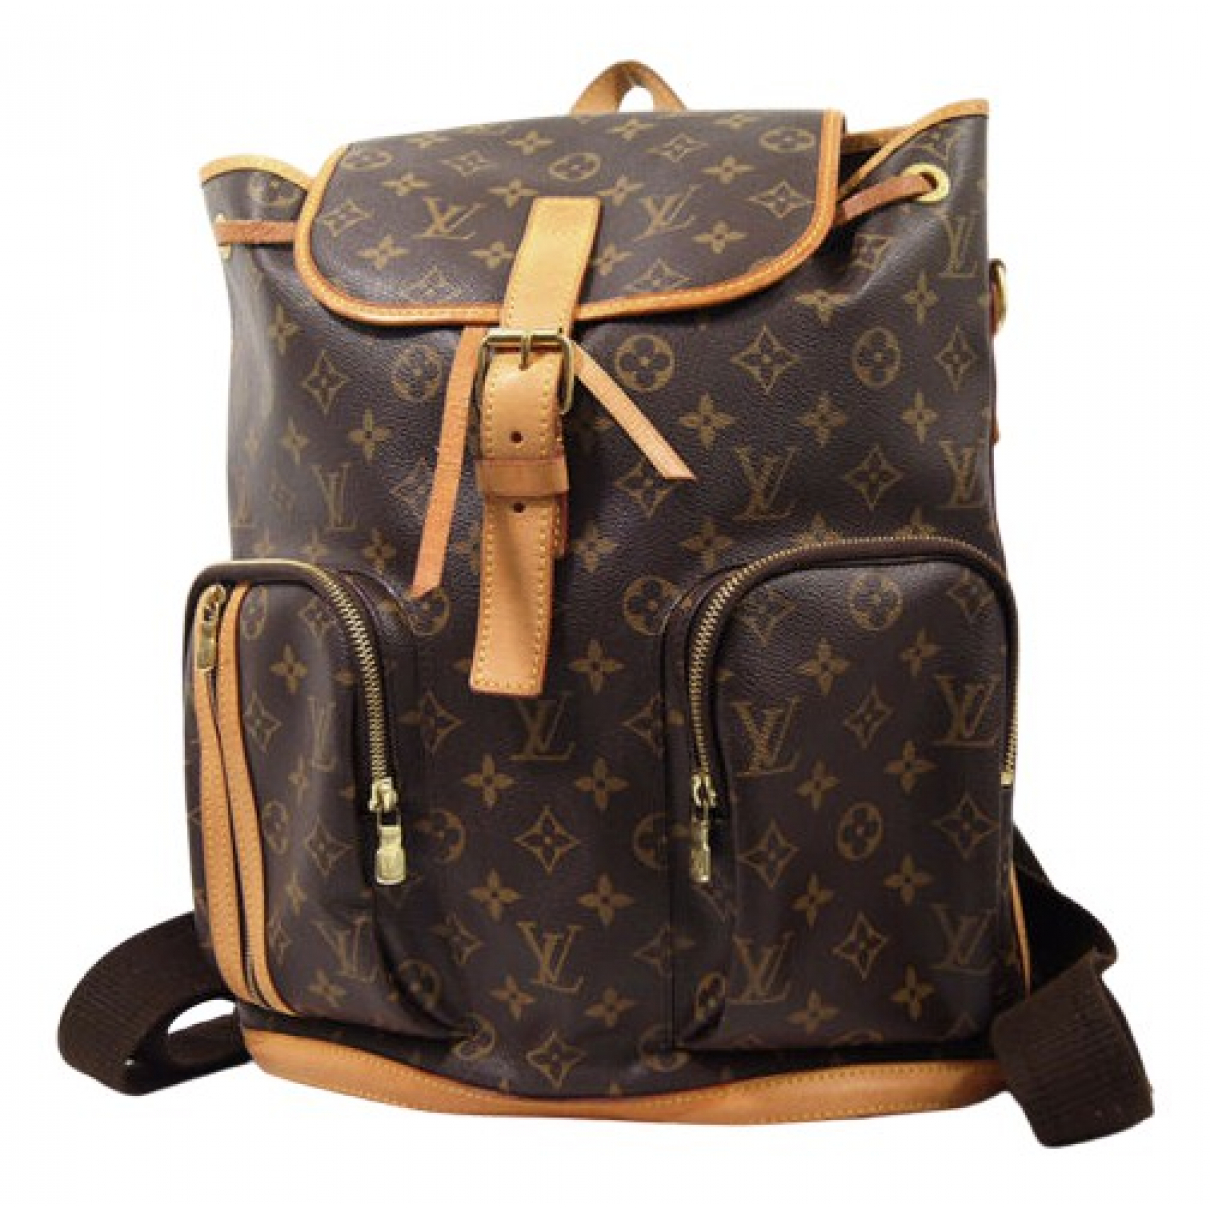 Mochila Bosphore Backpack de Lona Louis Vuitton